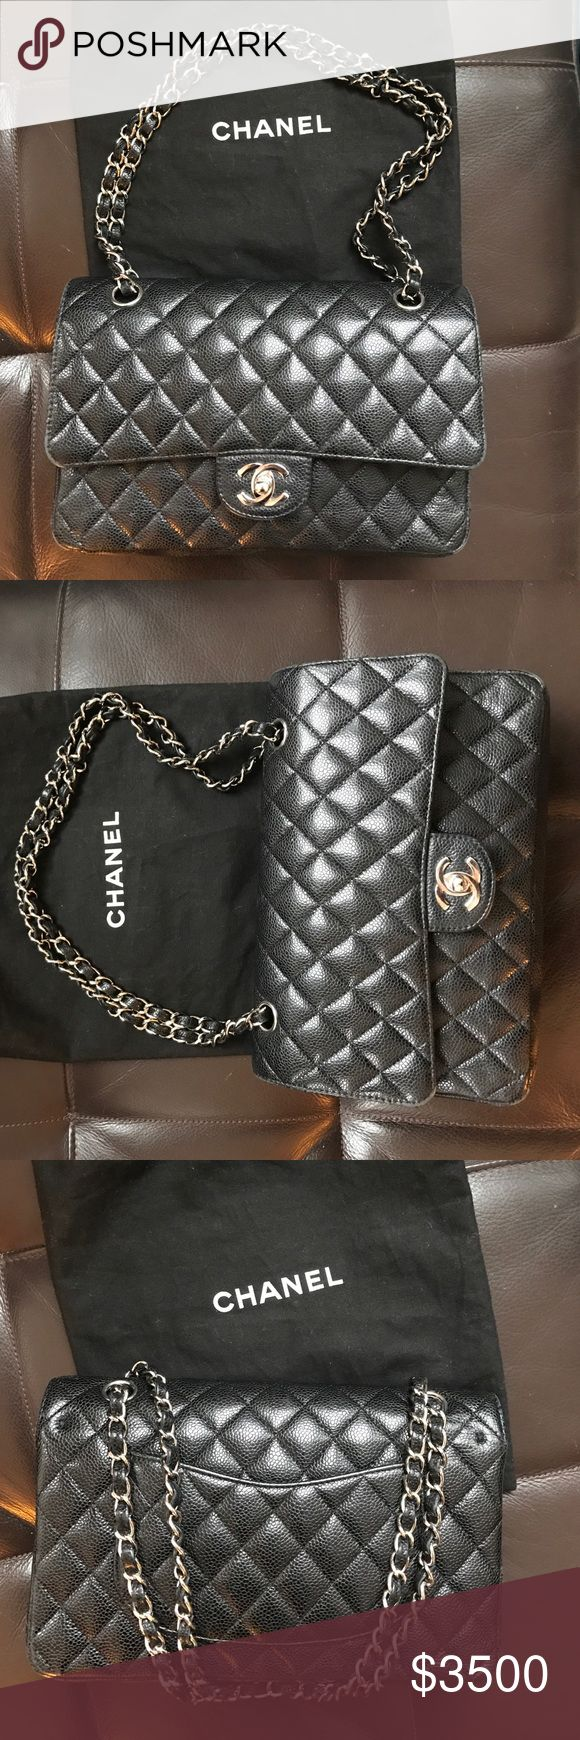 Chanel classic flap bag Classic Chanel with caviar leather and silver metal. The perfect size and bag for everyone. CHANEL Bags Shoulder Bags